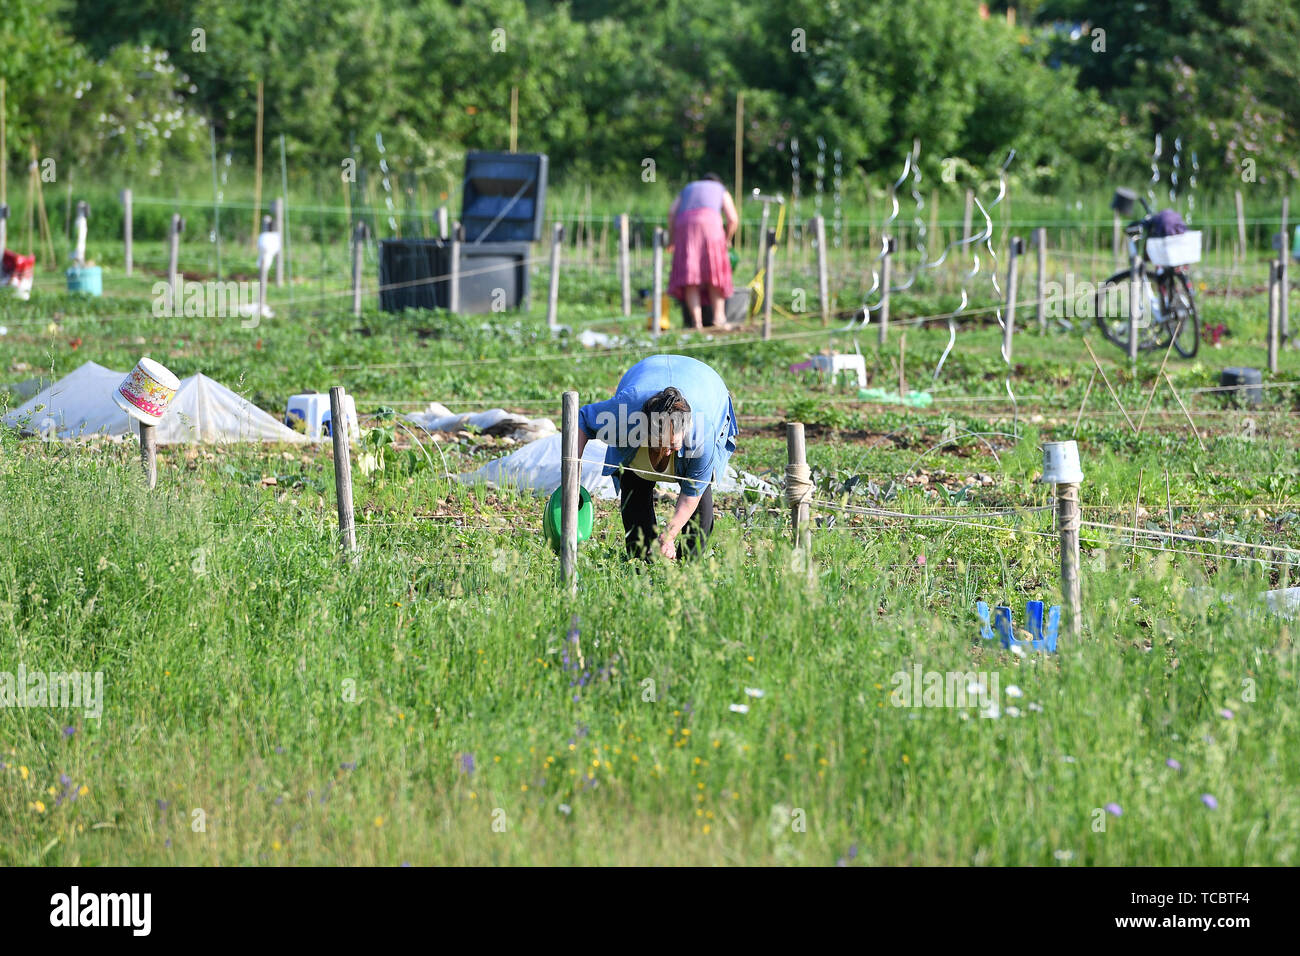 Gronsdorf, Deutschland. 06th June, 2019. Women work in their Schrebergaerten. Hobbygaertner.Kleingarten. | usage worldwide Credit: dpa/Alamy Live News Stock Photo